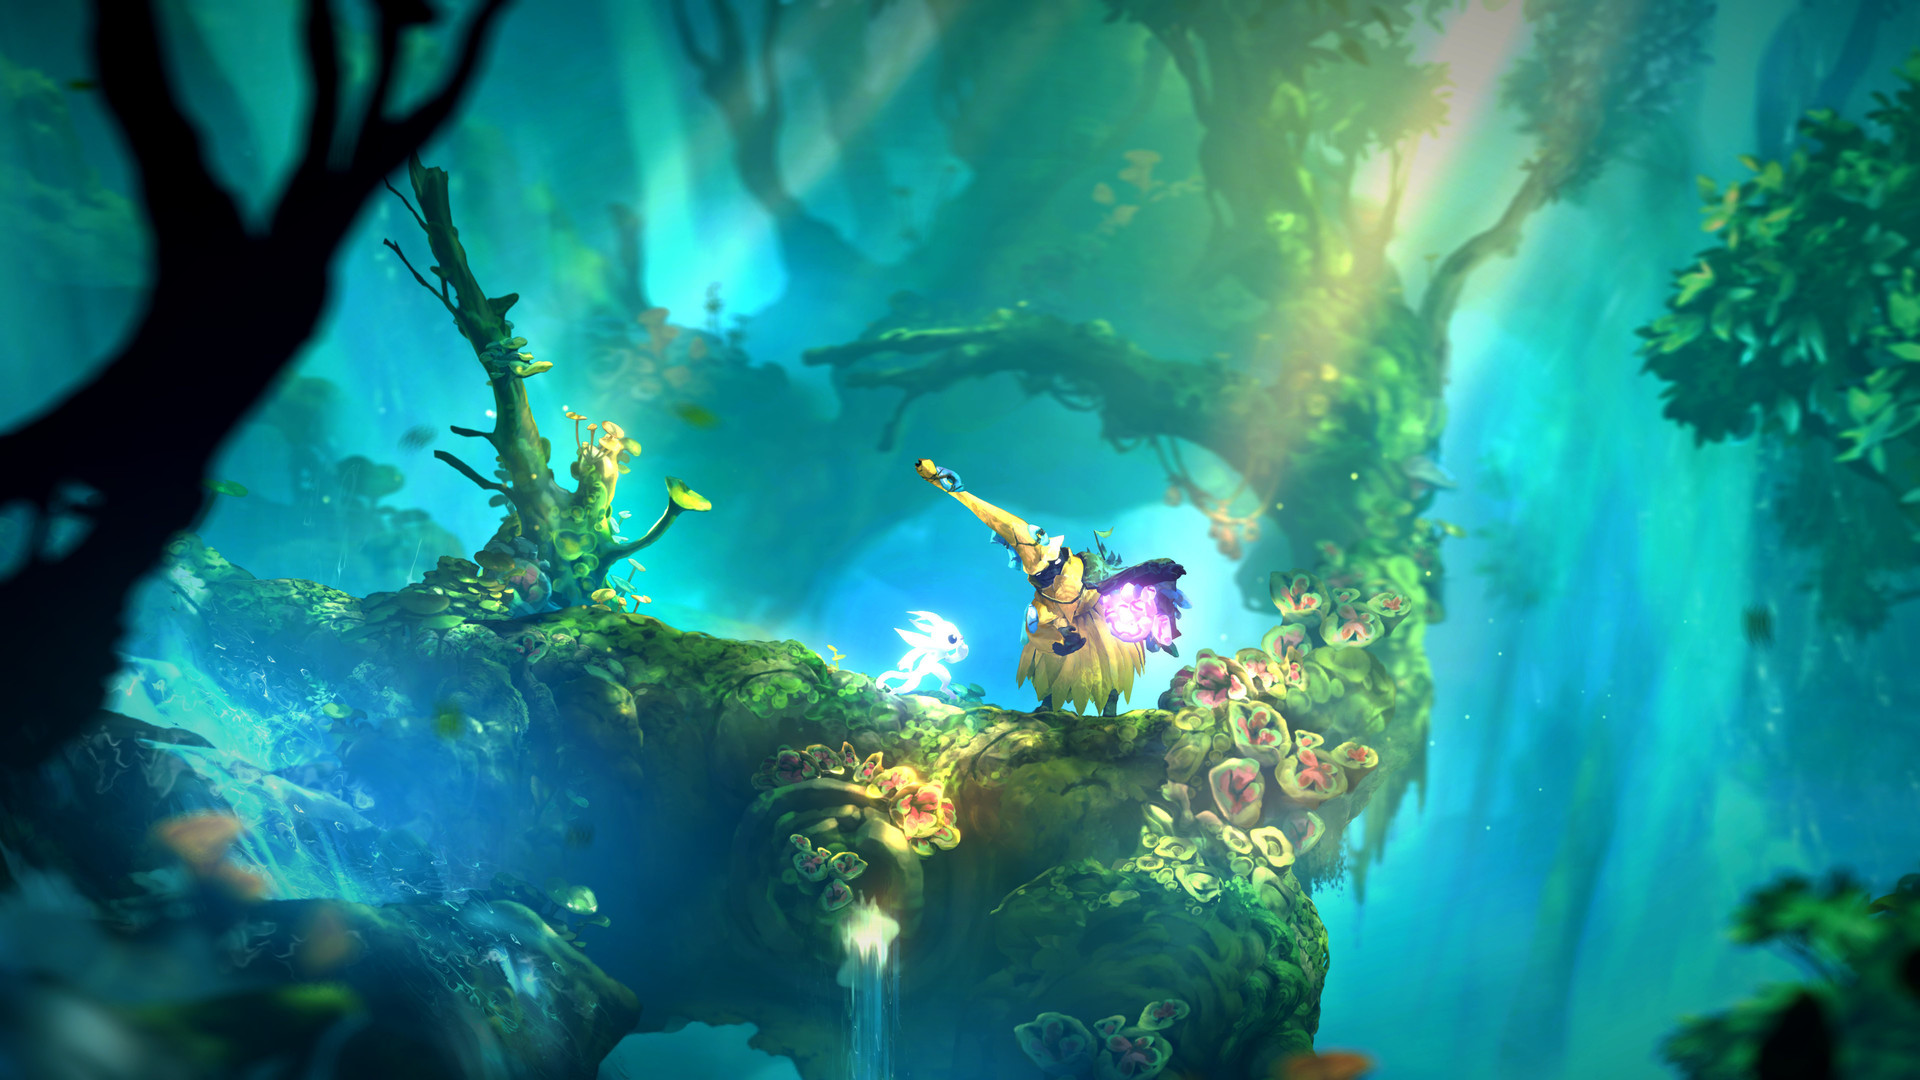 Ori and the Will of the Wisps - Metroidvania hüpft auf die Nintendo Switch